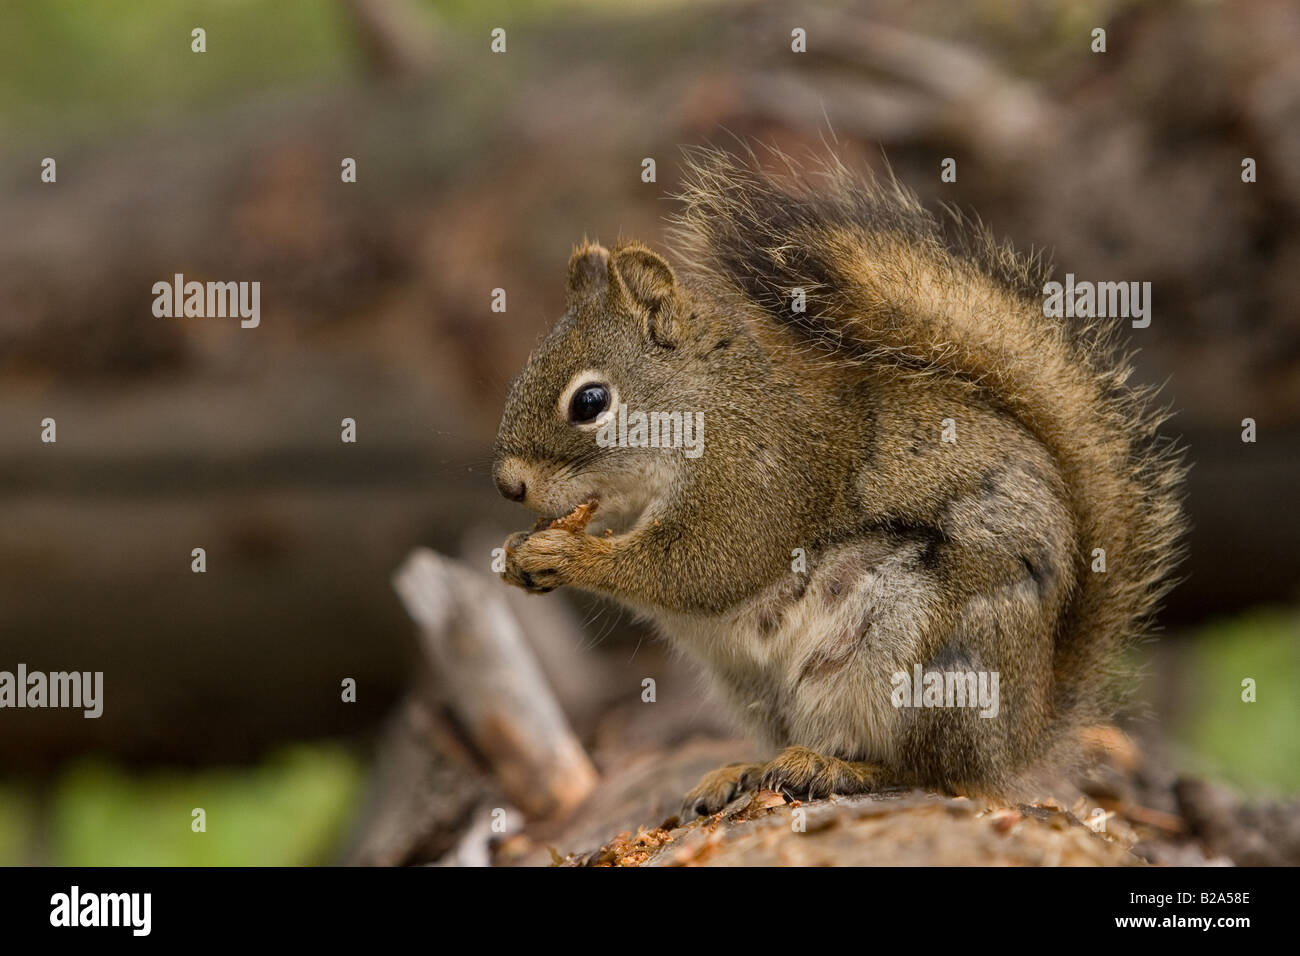 Squirrel at Jasper National Park - Stock Image